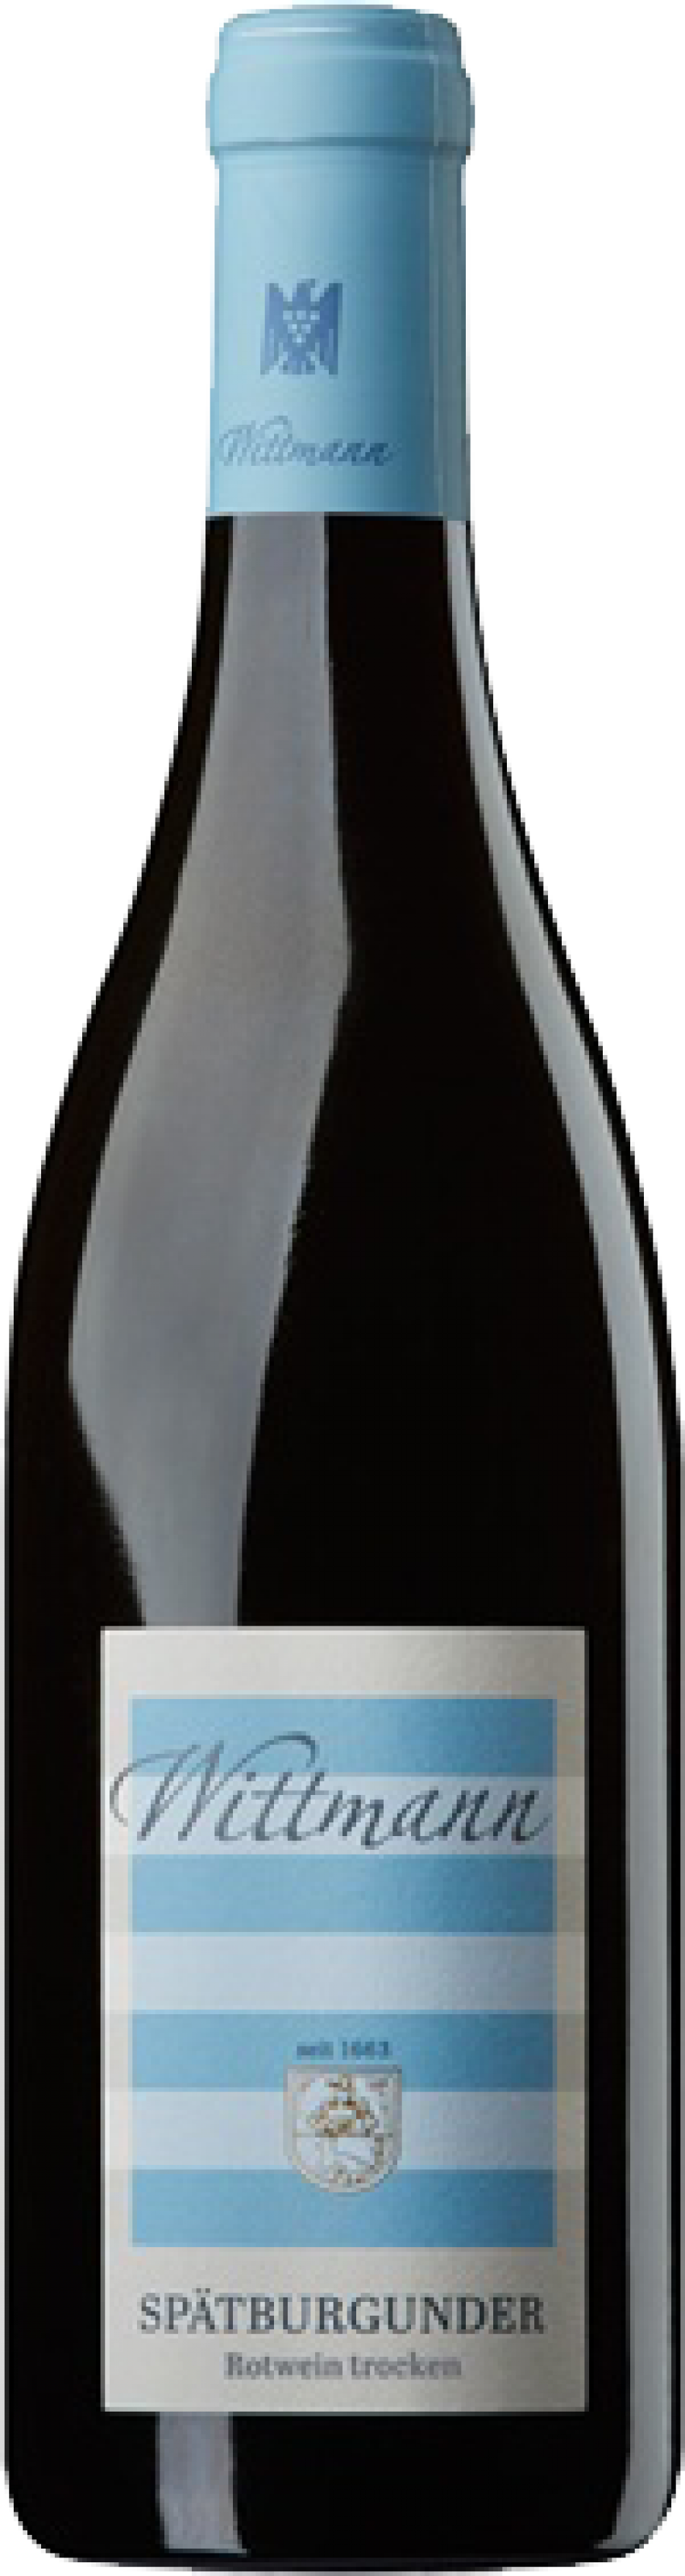 files/images/wines/Germany/wittmann-rheinhessen/2015 spatburgunder pinot noir .png